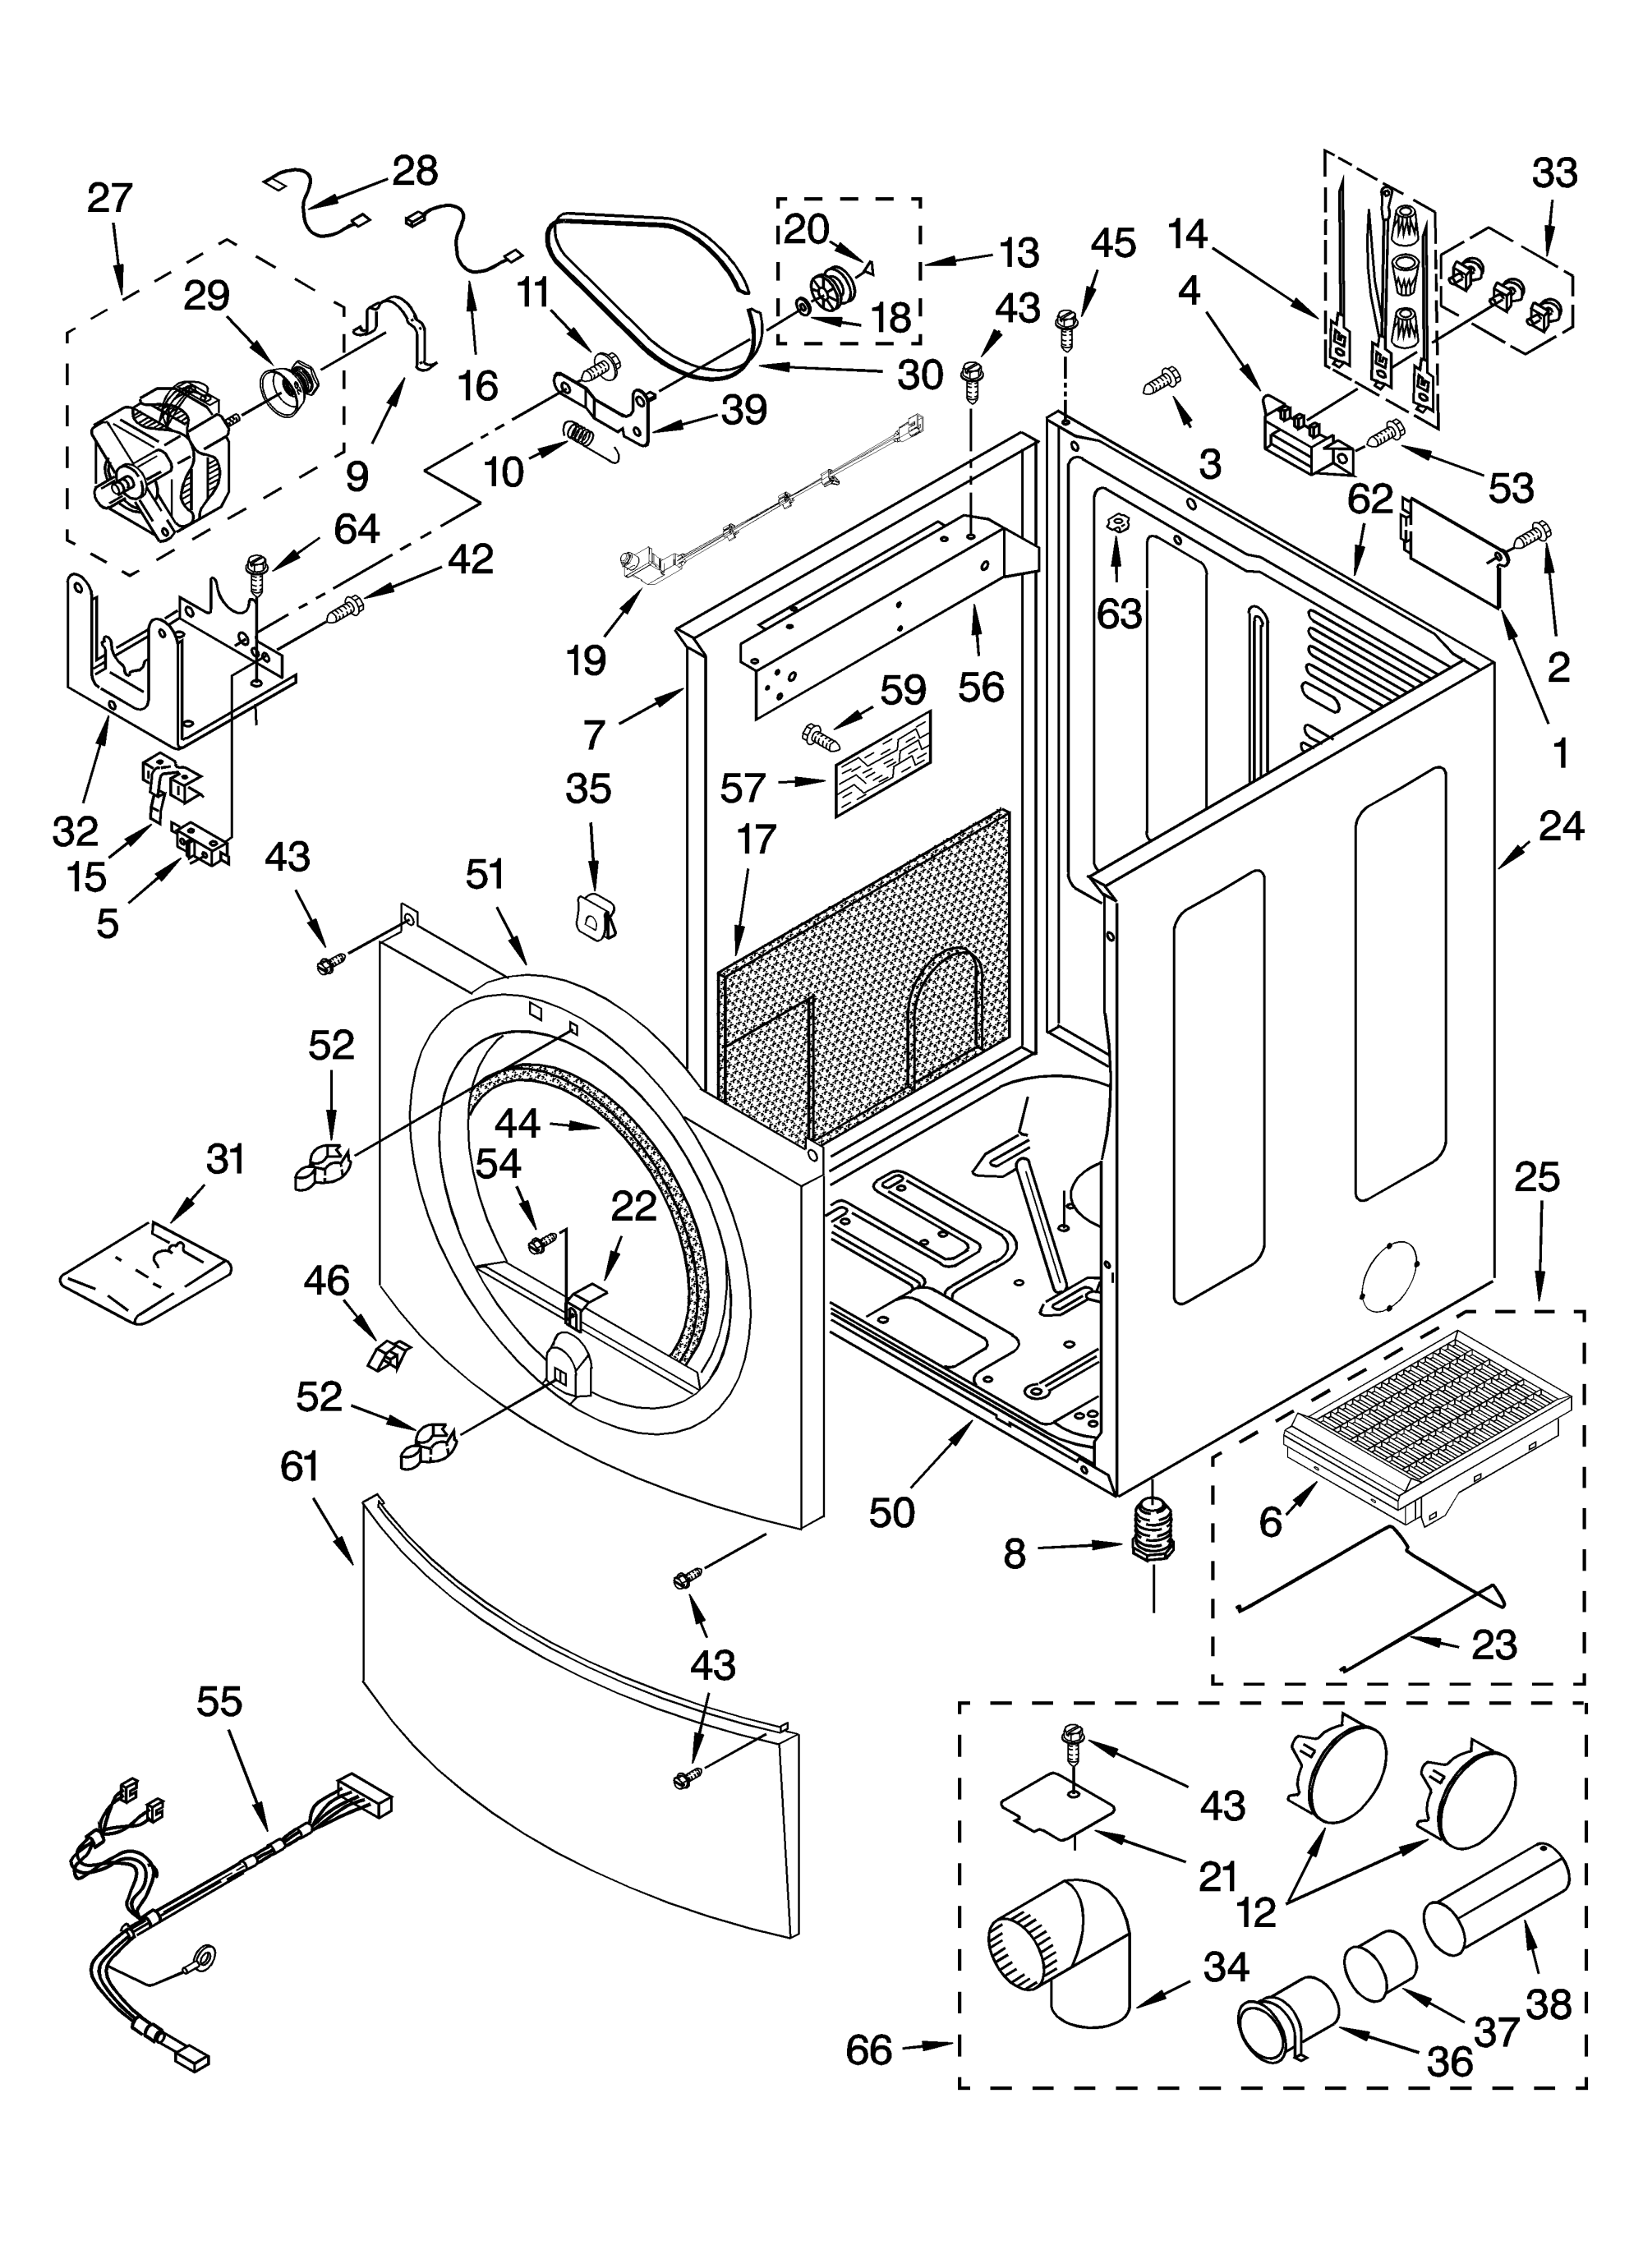 hight resolution of whirlpool duet washer parts diagram on whirlpool duet sport washermachine parts diagram besides whirlpool cabrio dryer